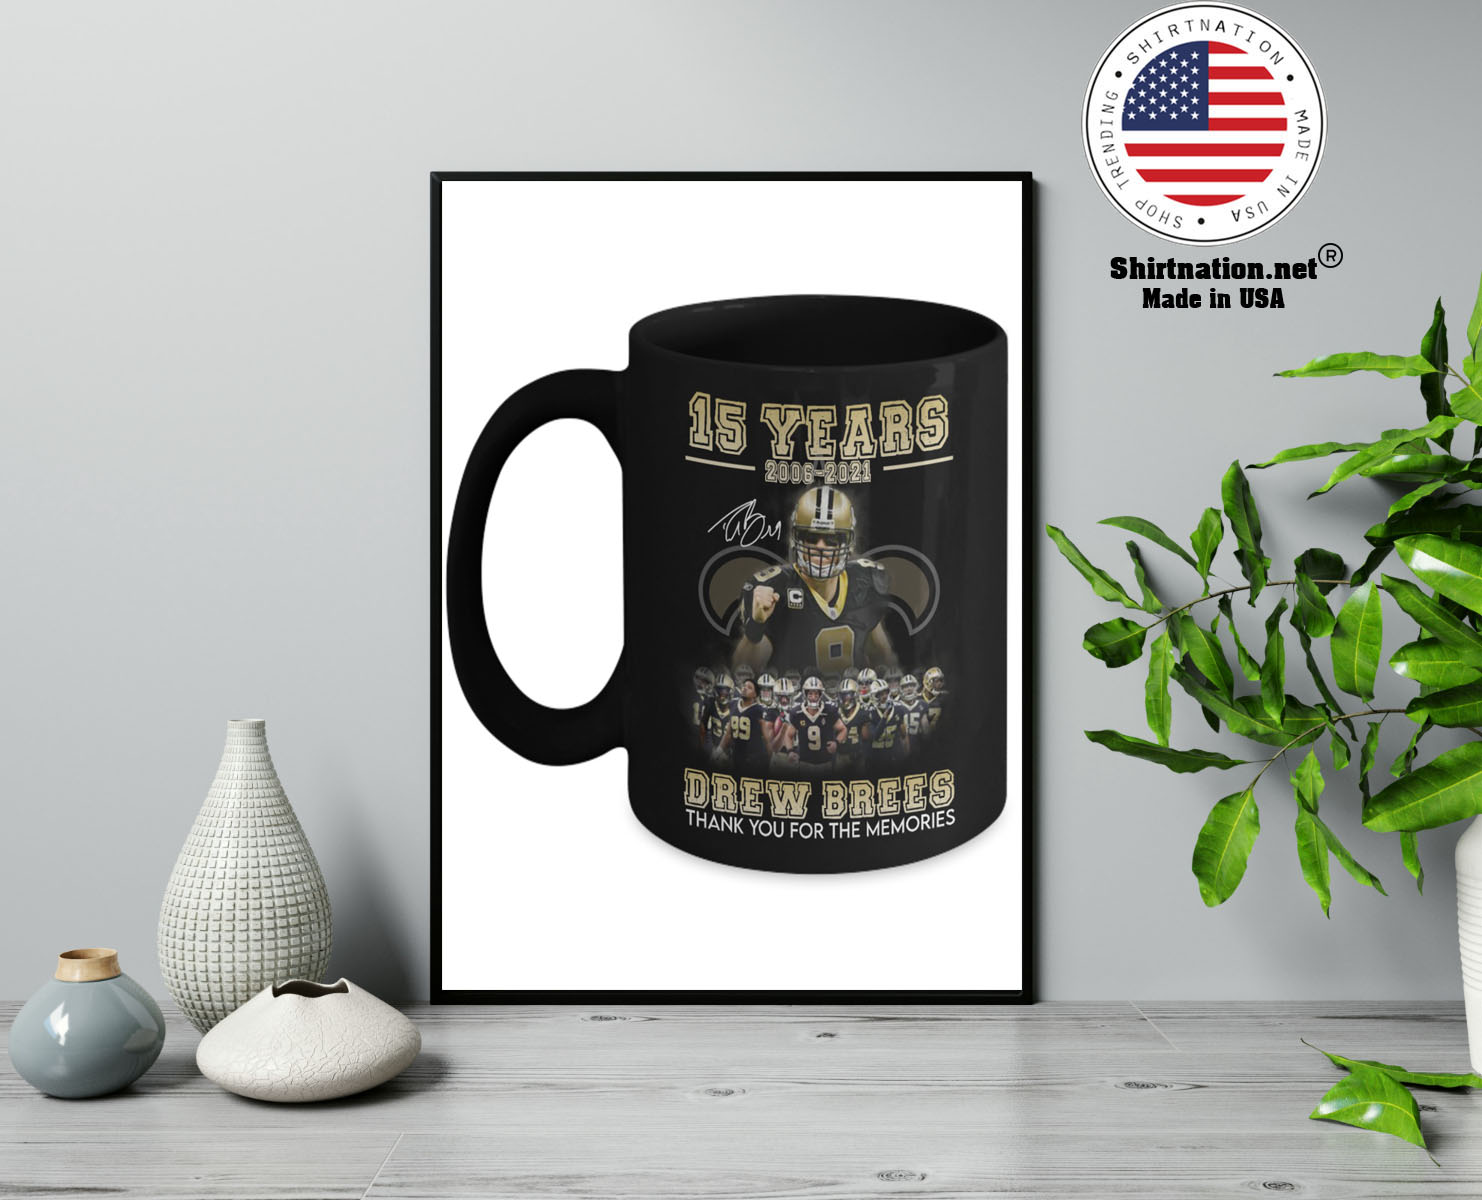 15 years 2006 2021 drew brees thank you for the memories mug 13